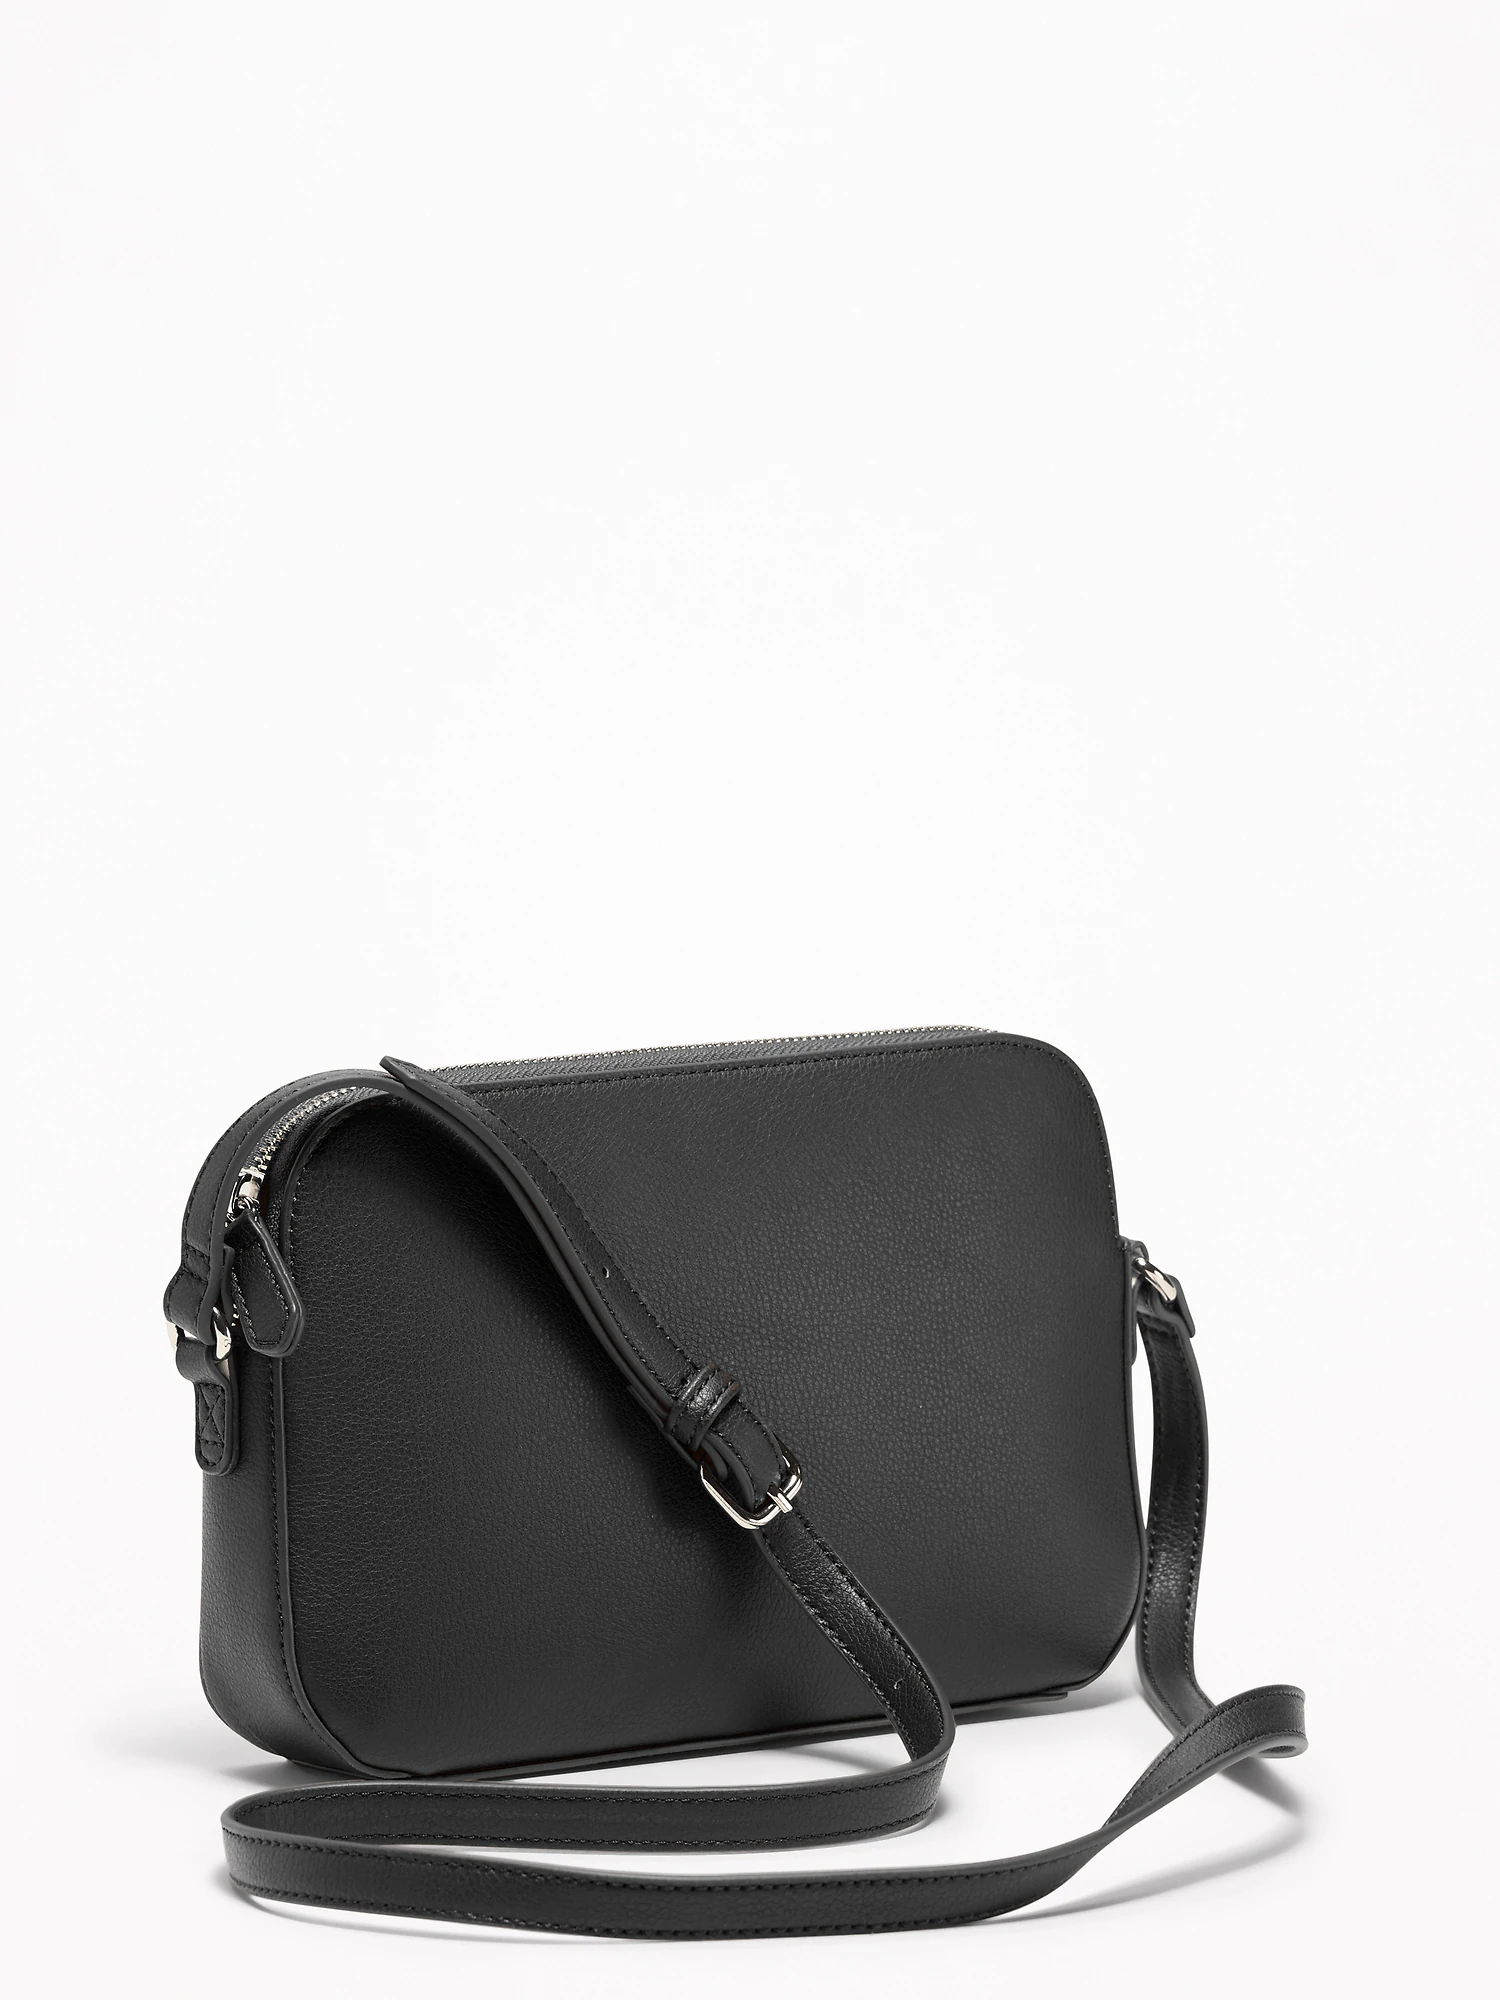 Faux-Leather Cross-Body Bag for Women - Black